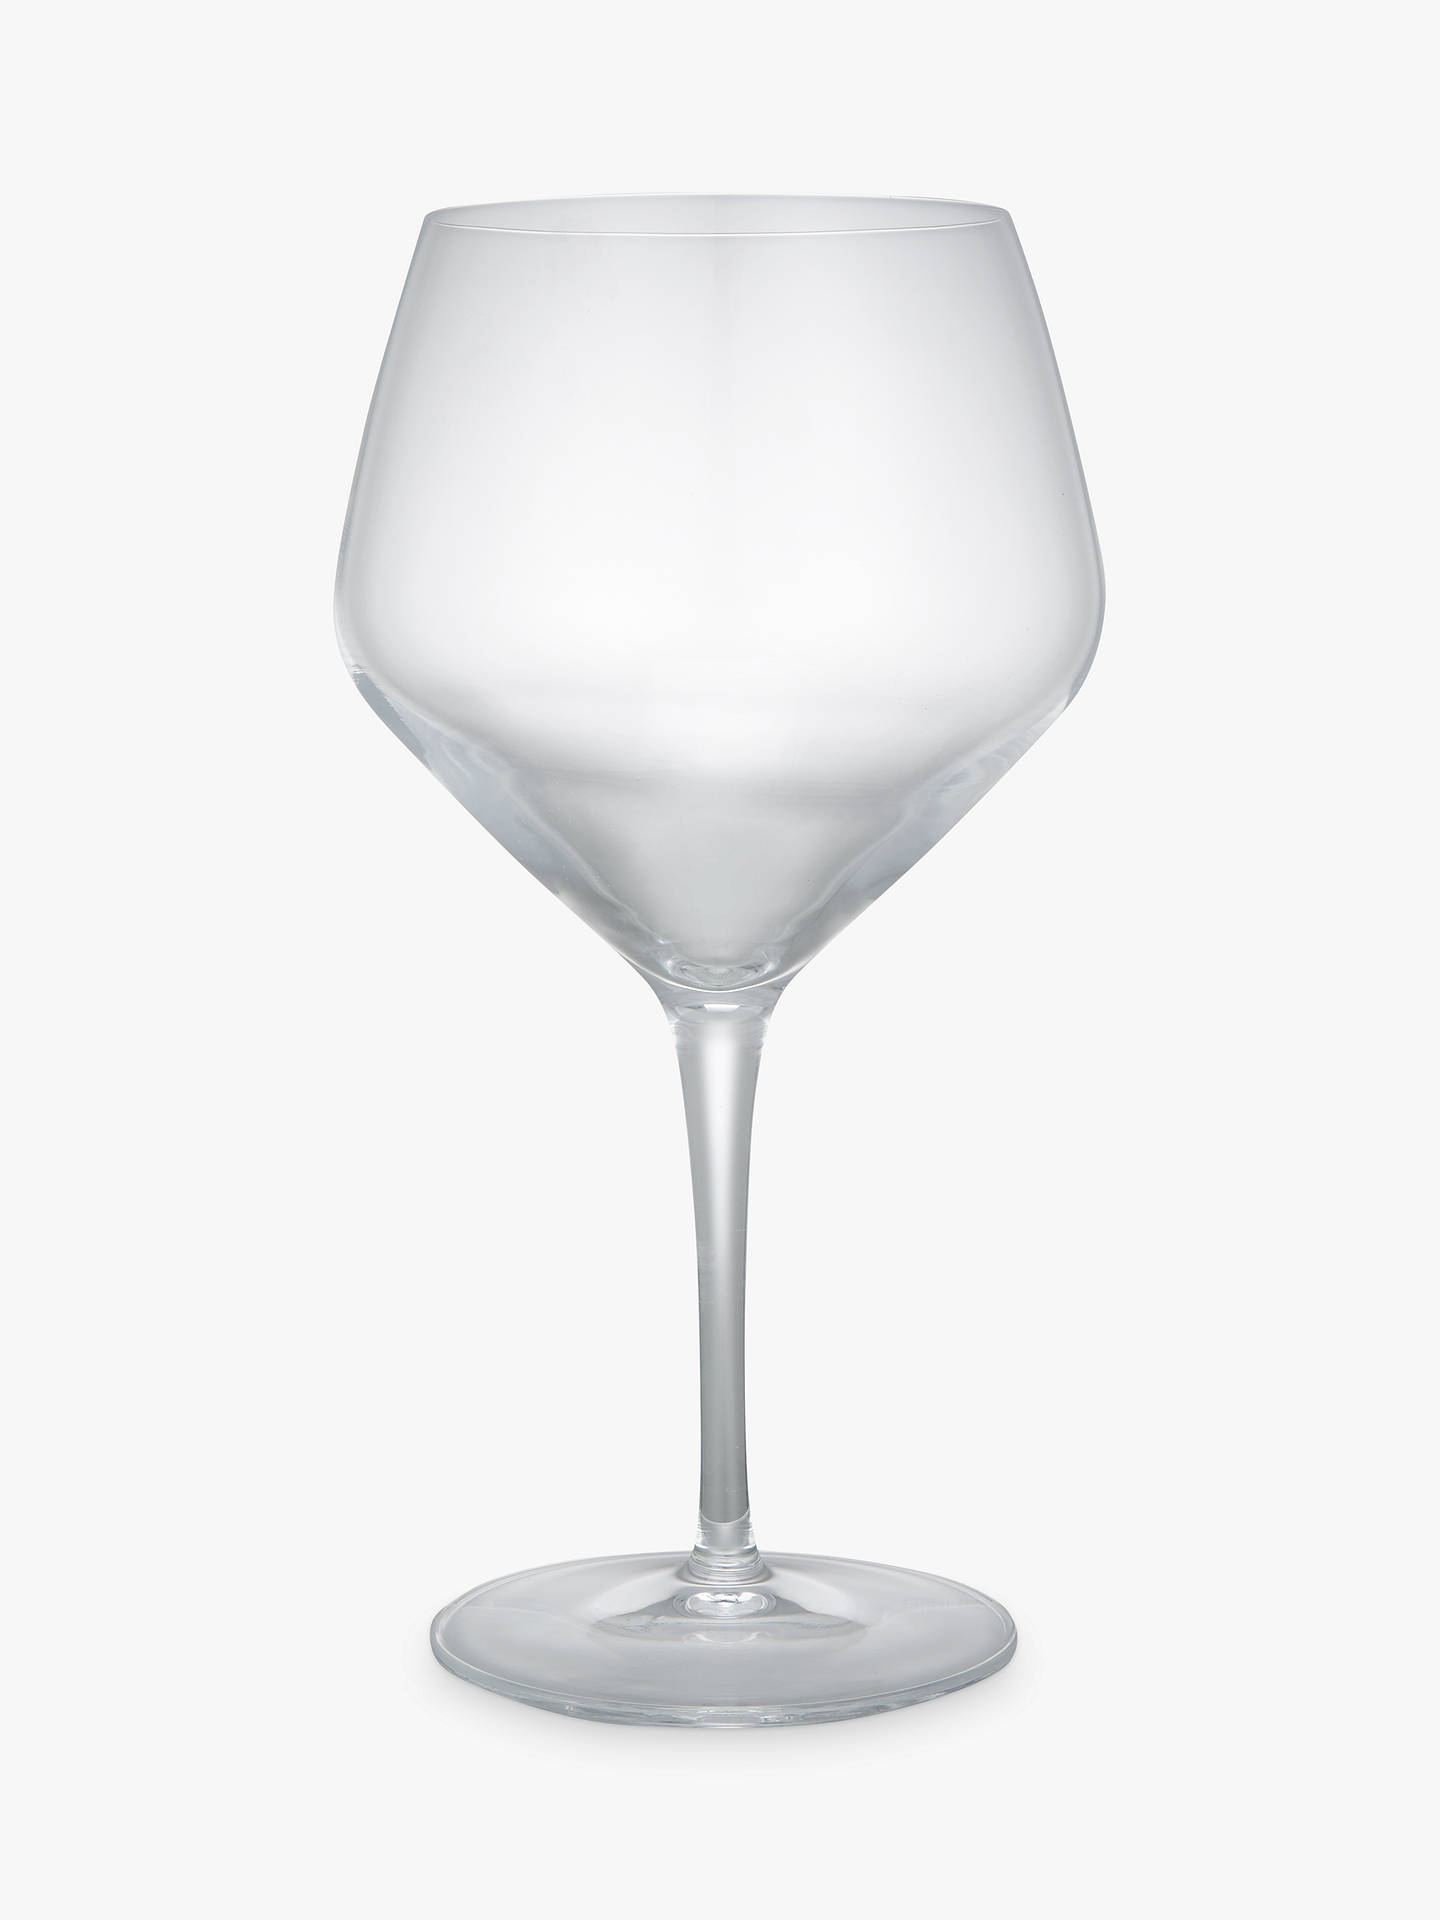 Buy John Lewis & Partners Connoisseur Gin Glasses, Clear, 700ml, Set of 2 Online at johnlewis.com